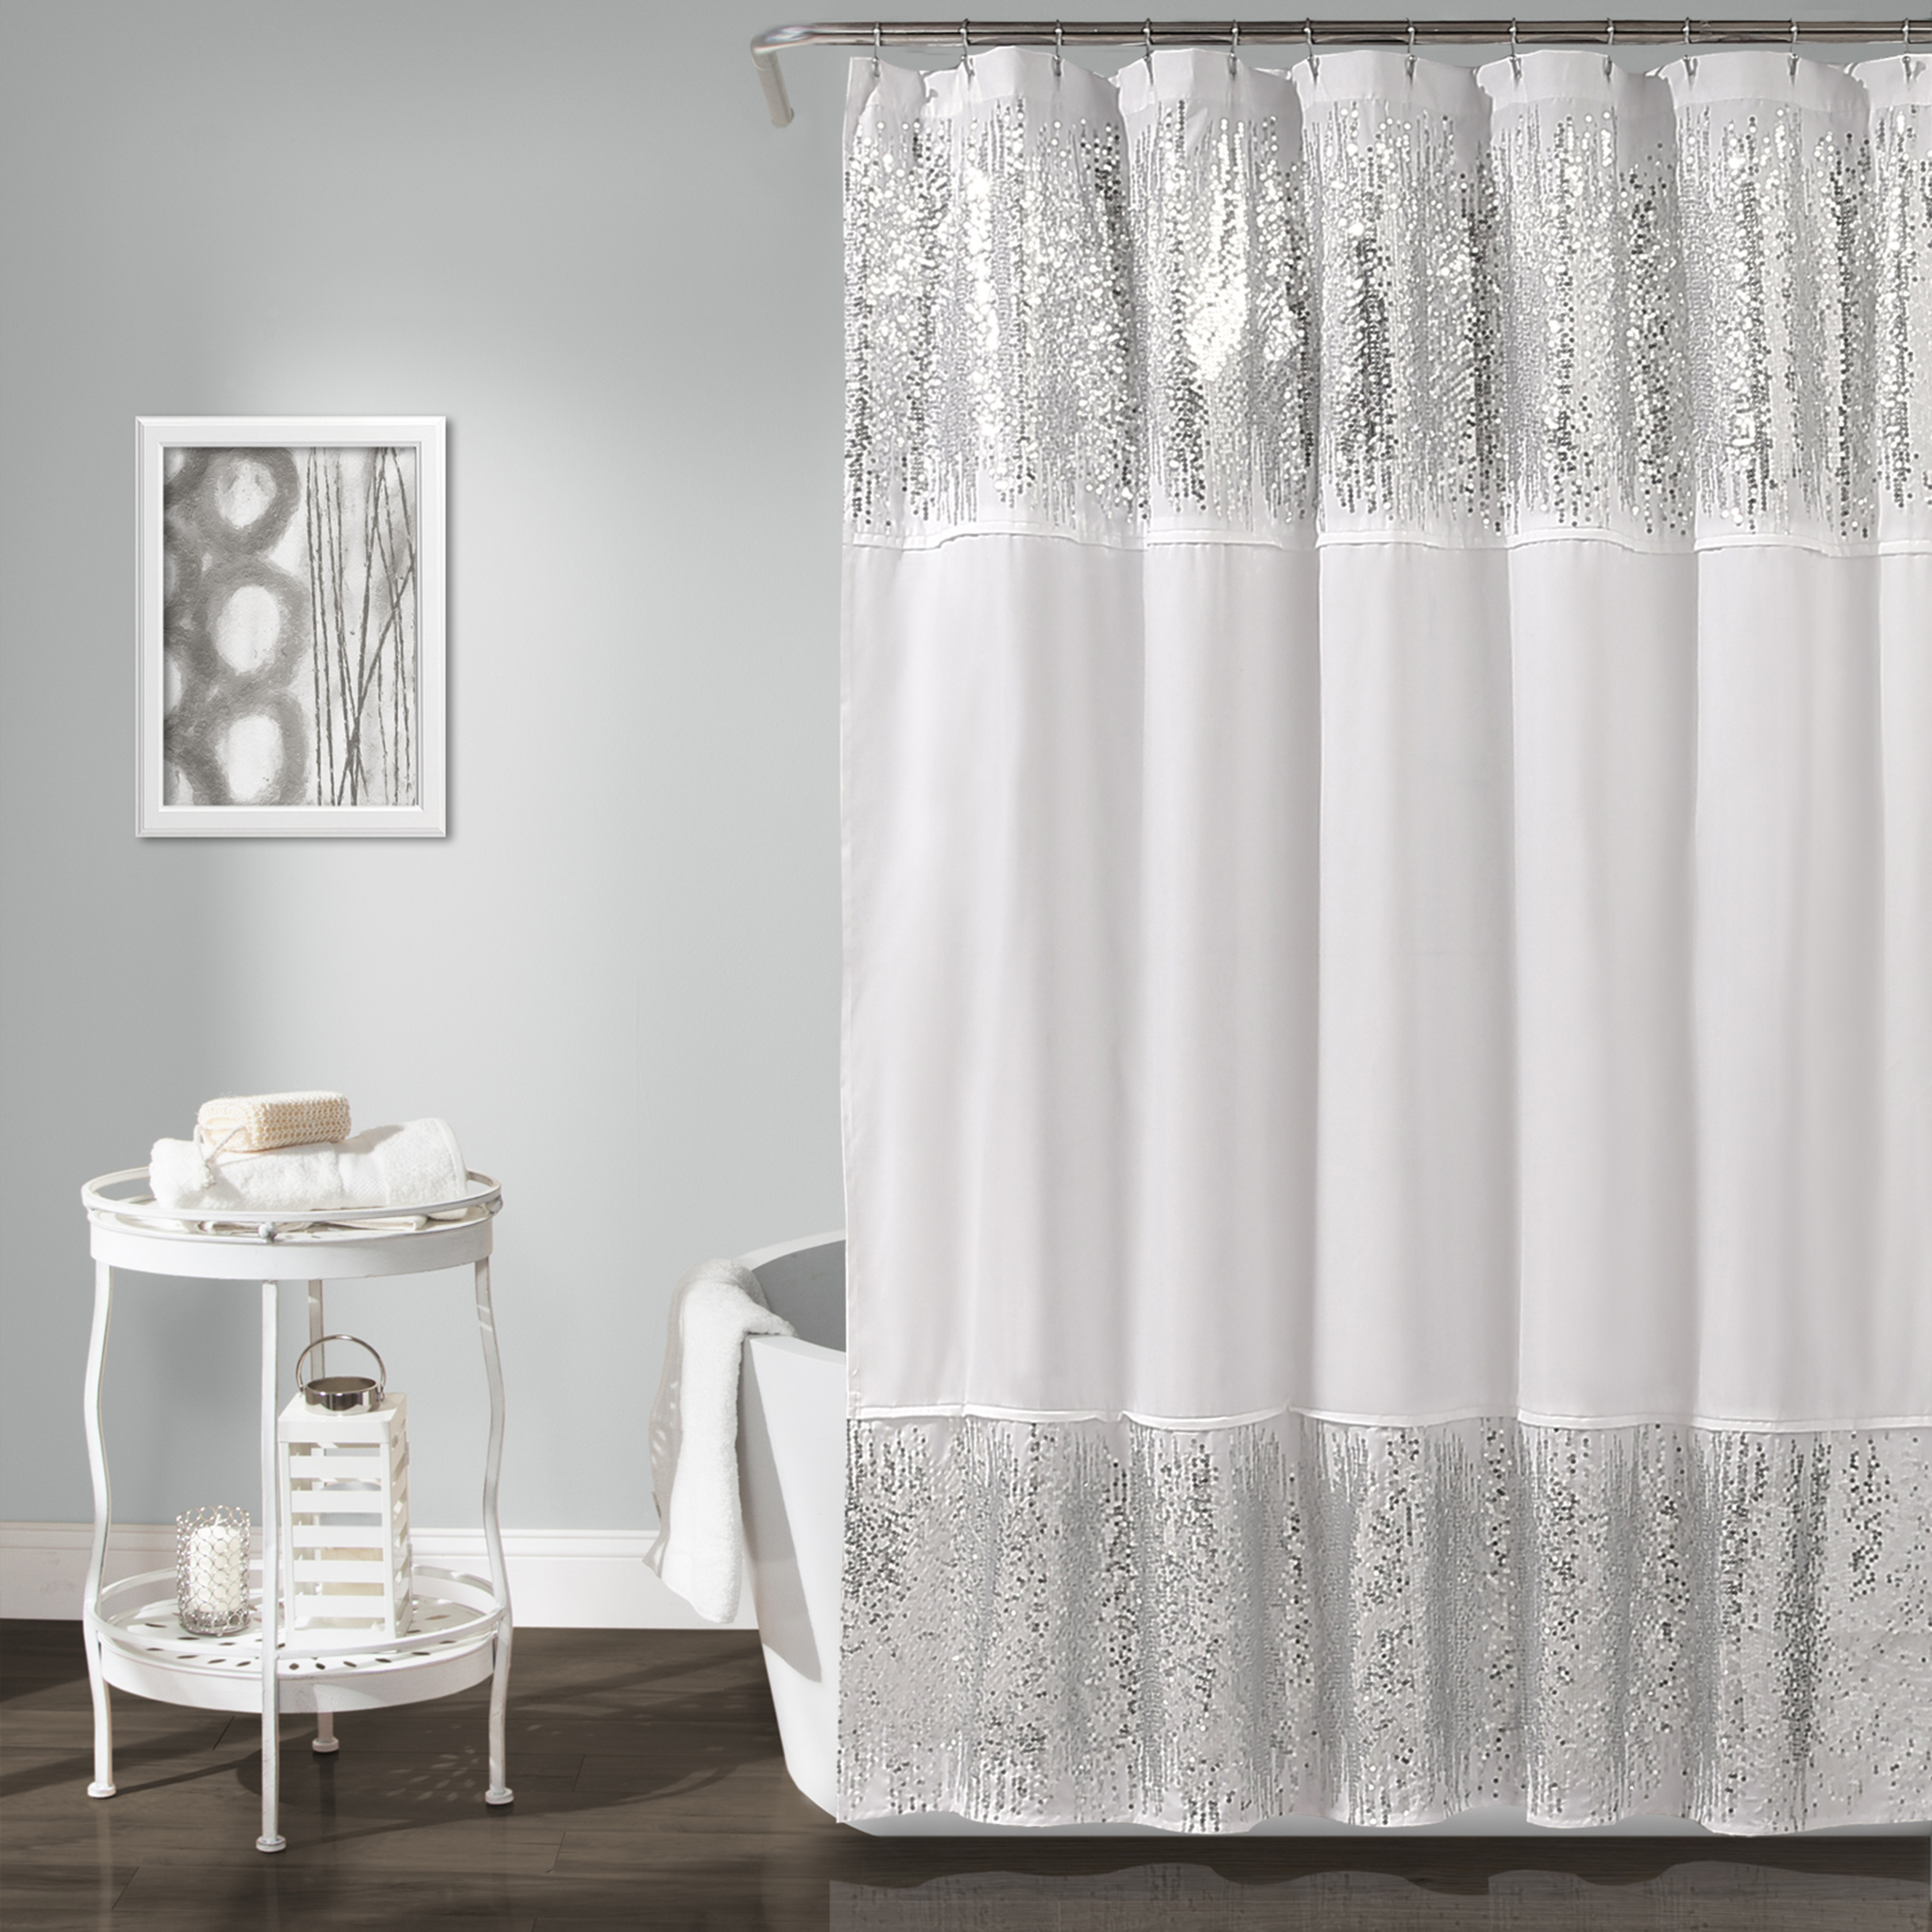 "Shimmer Sequins Shower Curtain Silver, 70"" x 72"""